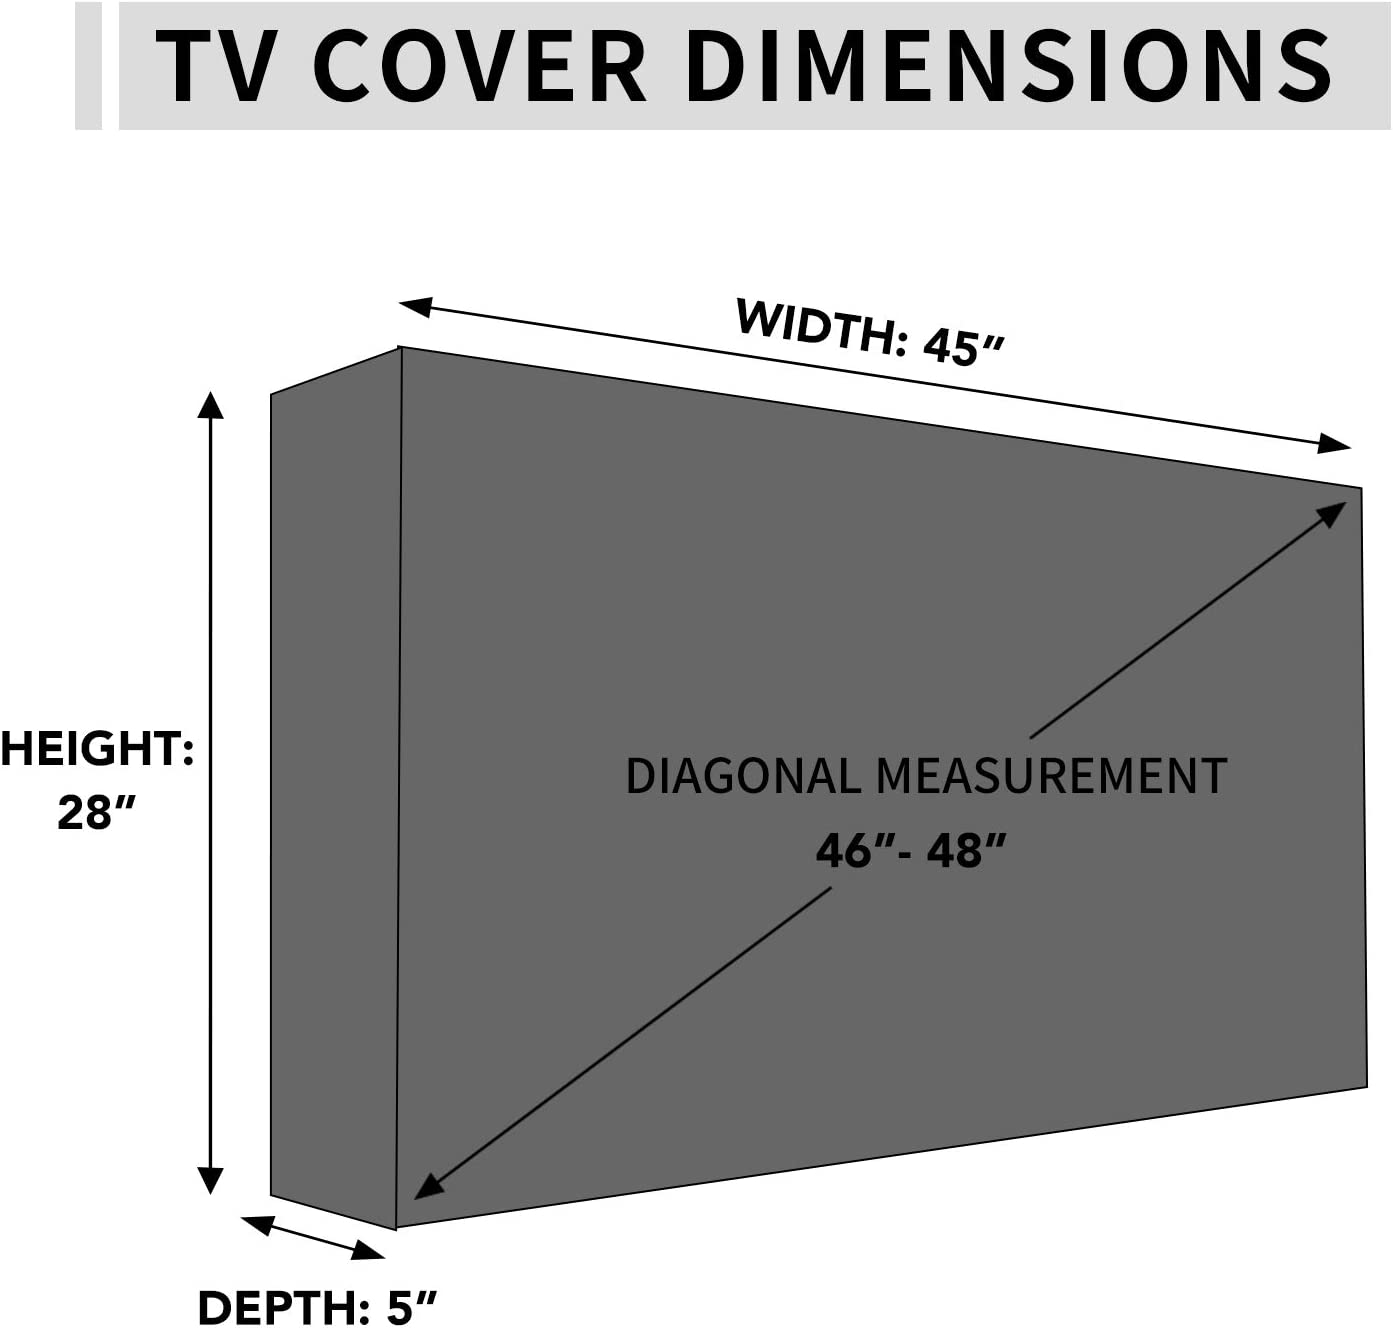 Durable TV Cover with Free Cleaning Cloth Black 36-38 inch Outdoor TV Cover with Front Flap for Watching TV on Rainy Days,Convenient Use without Remove